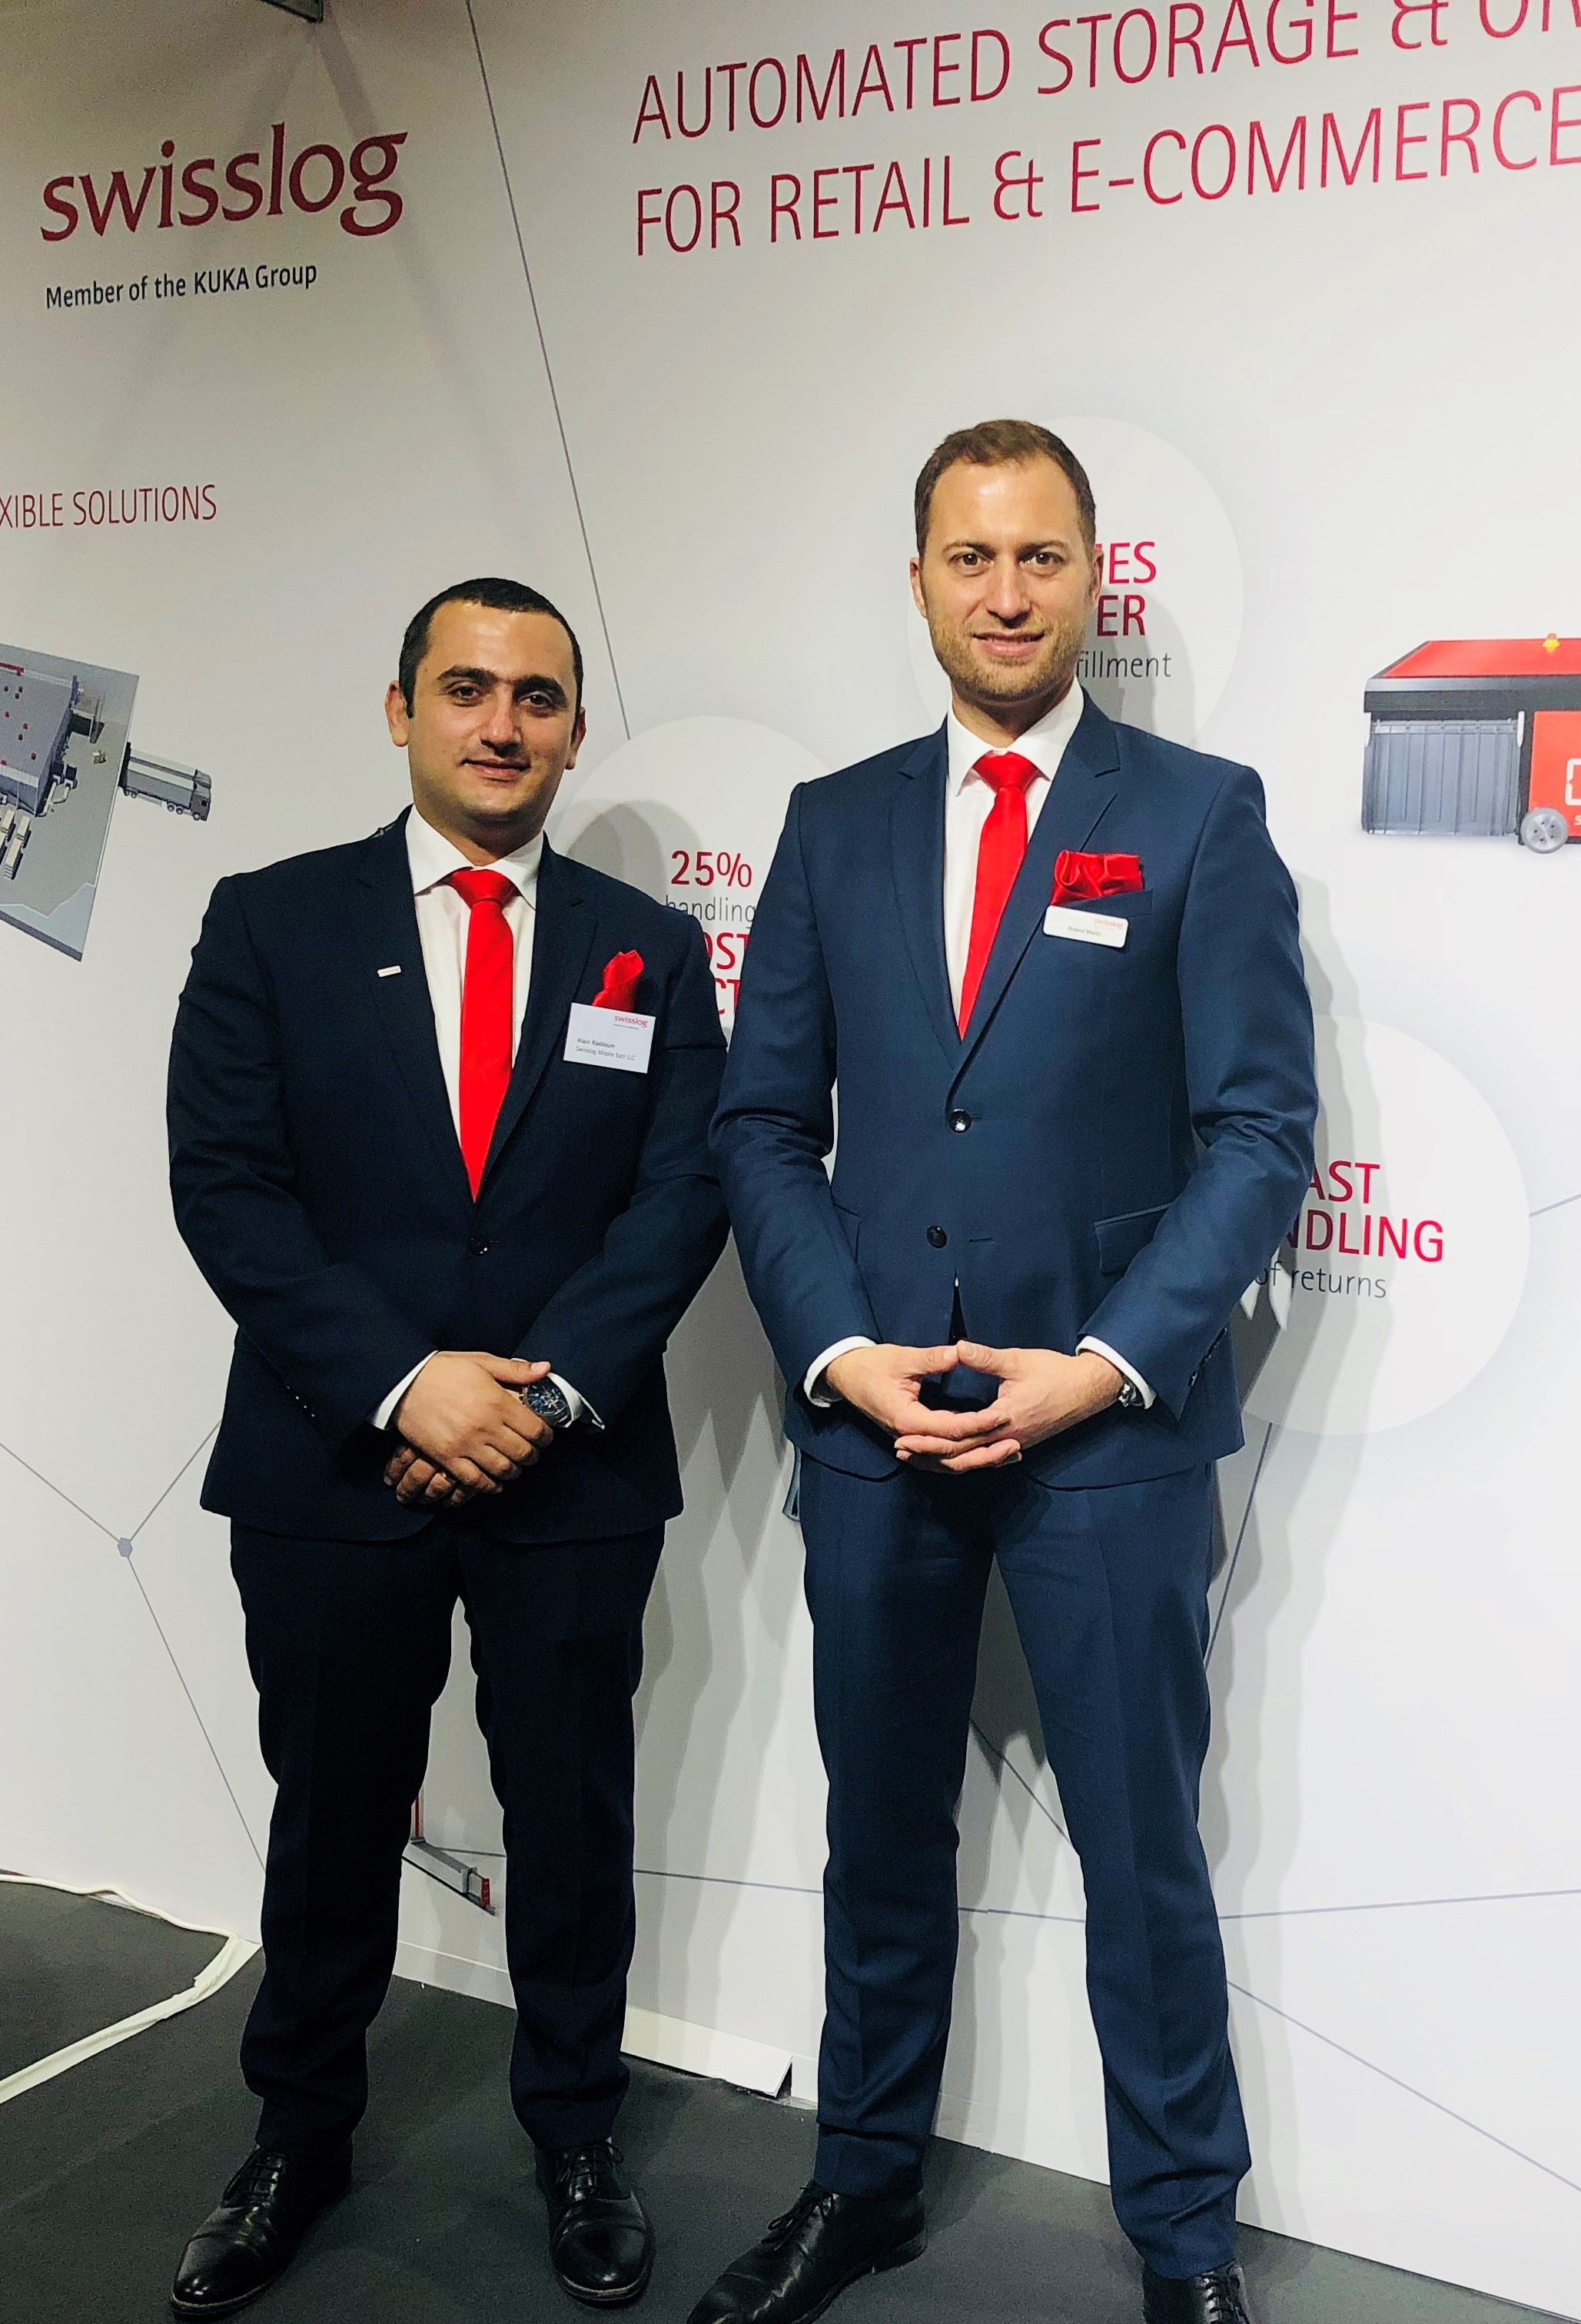 Swisslog debuts at Seamless, discusses warehouse automation solutions